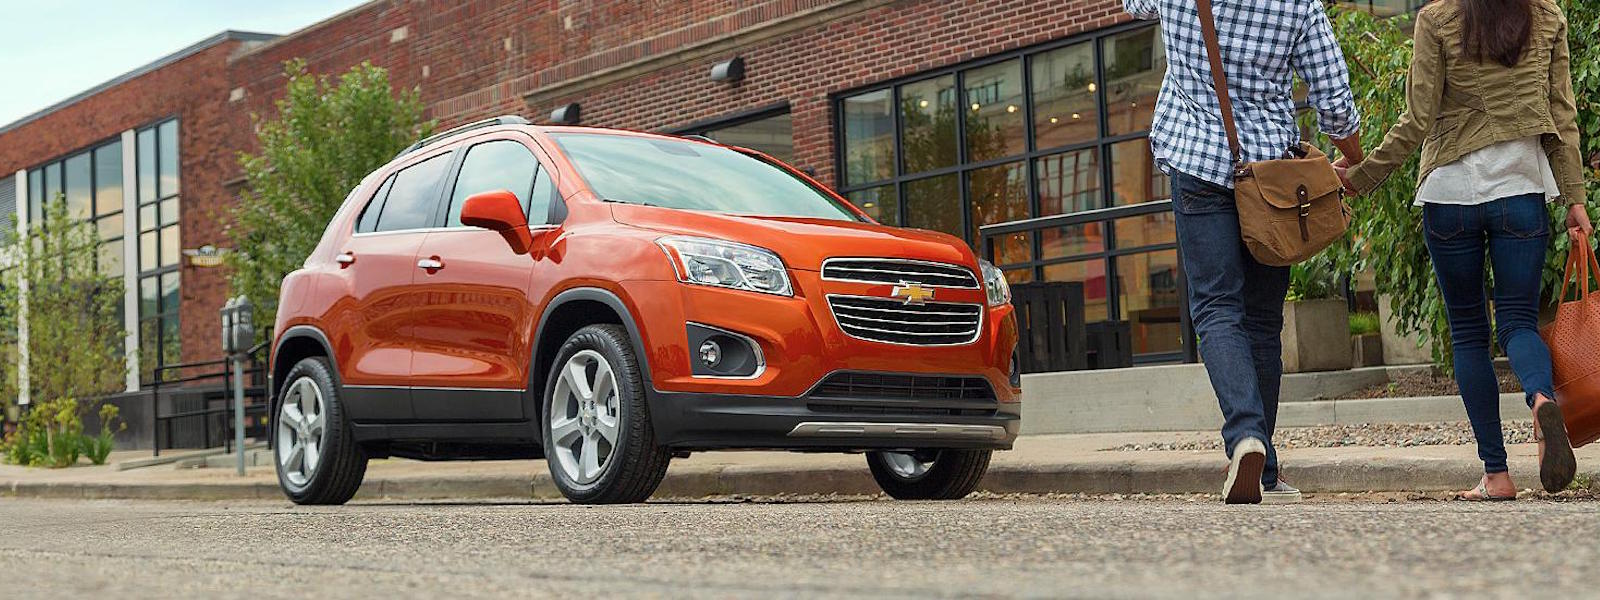 Chevy Trax Design